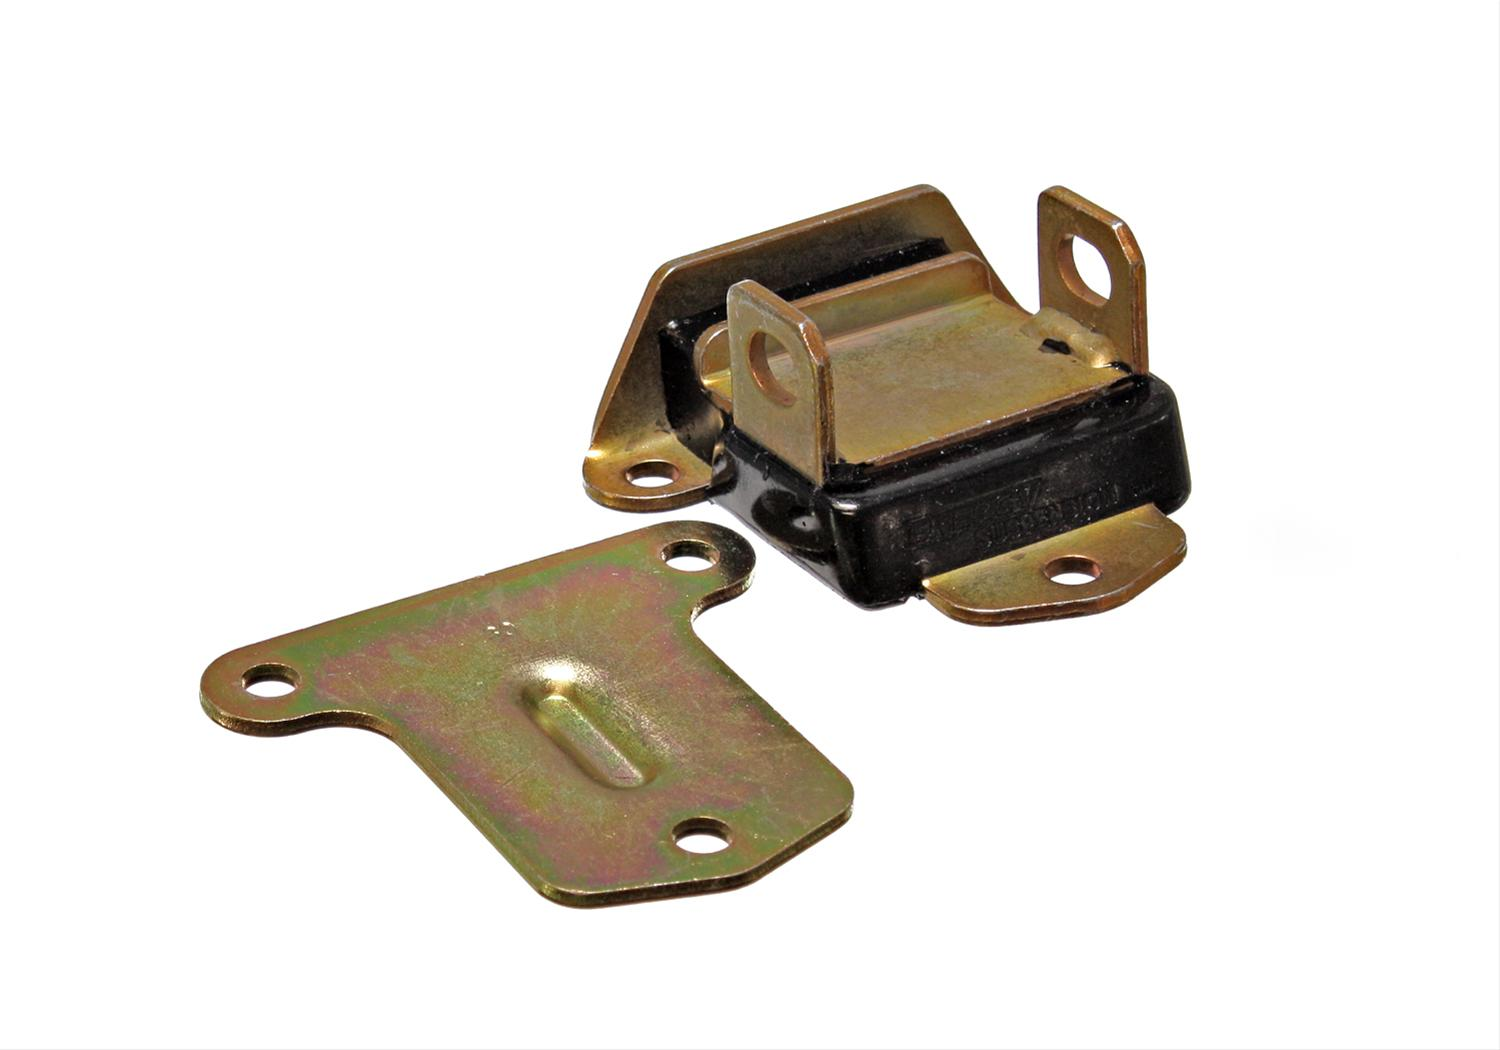 Energy Suspension Motor Mounts Mount Inserts 31114g Free 3 8 Chrysler Engine Diagram Shipping On Orders Over 49 At Summit Racing